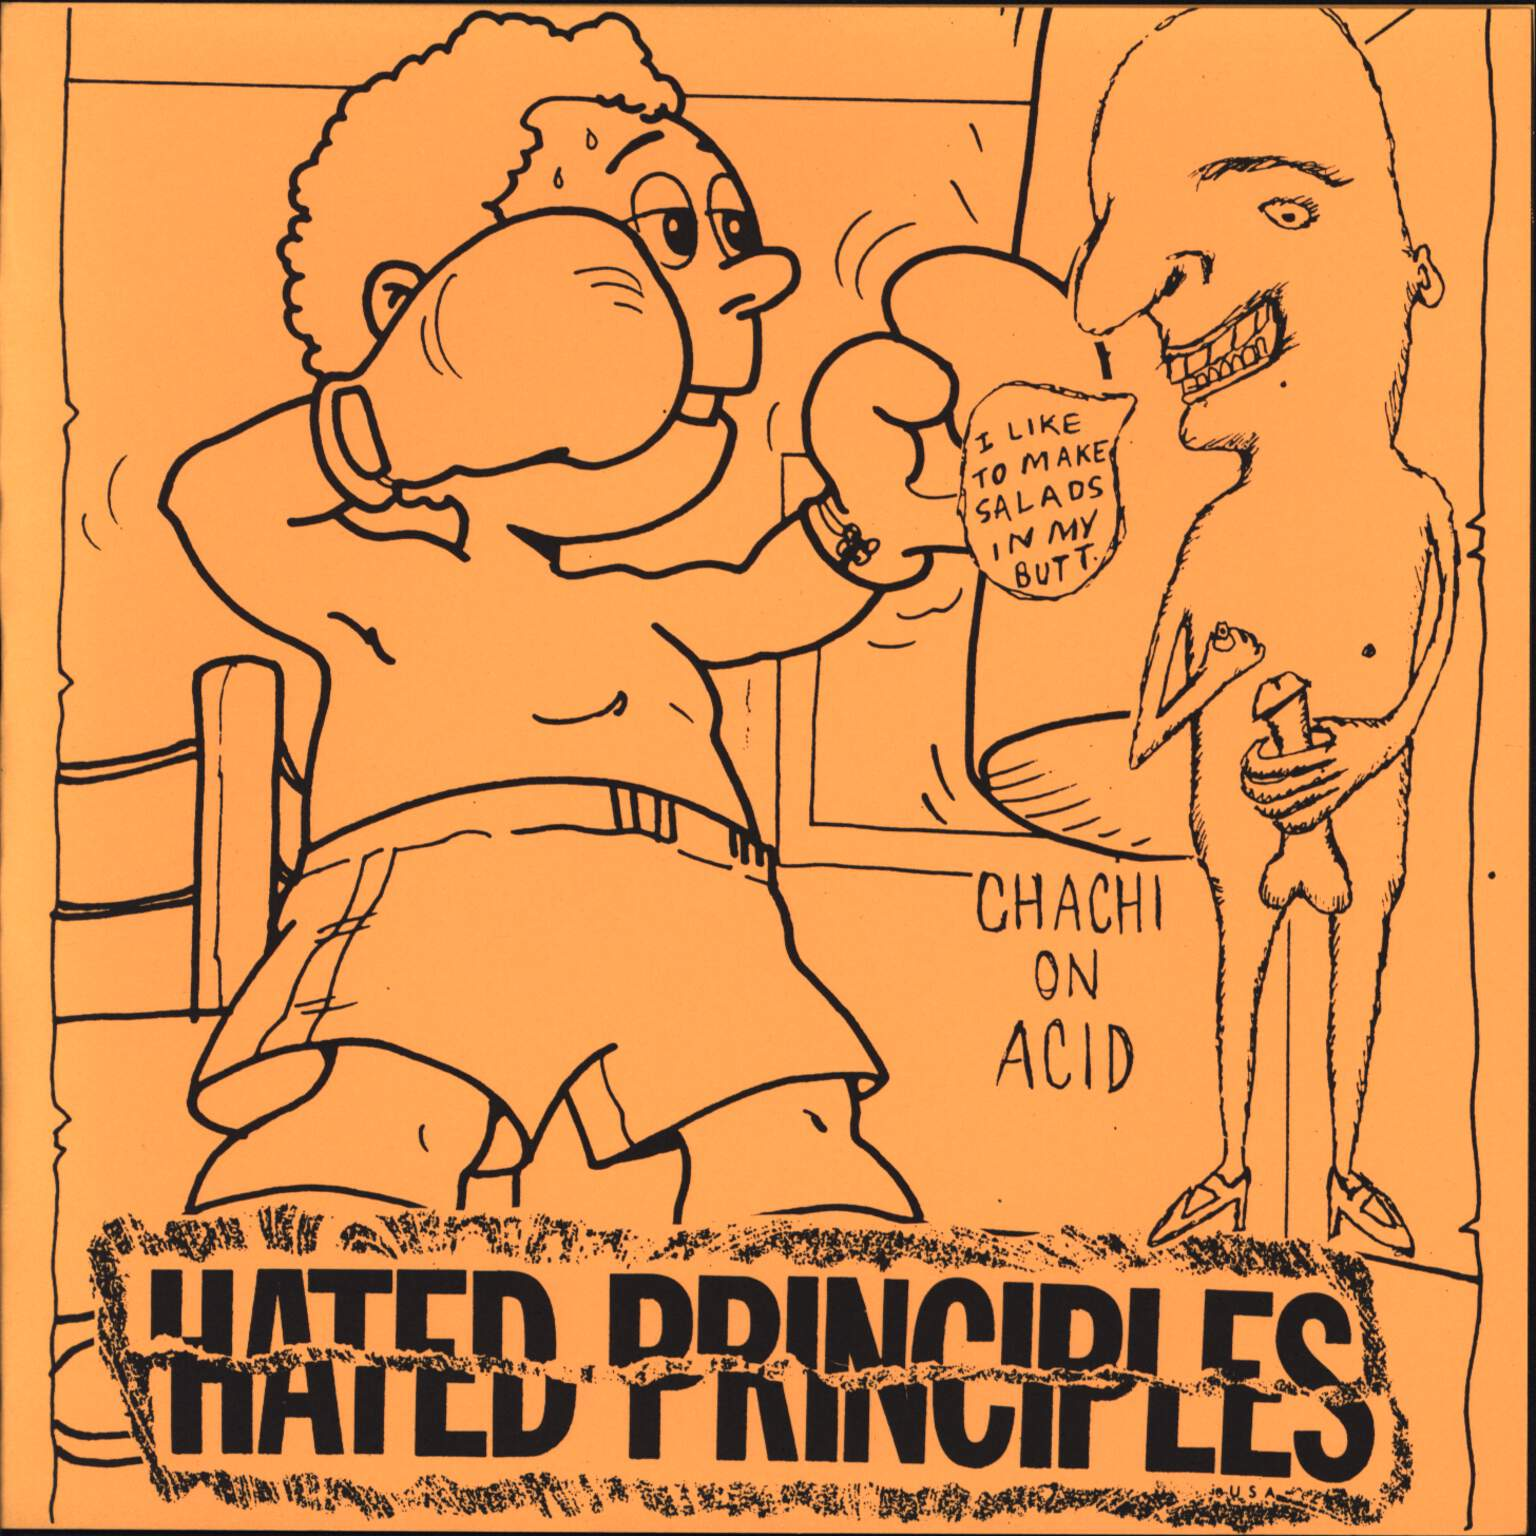 "Hated Principles: I Like To Make Salads In My Butt, 7"" Single (Vinyl)"